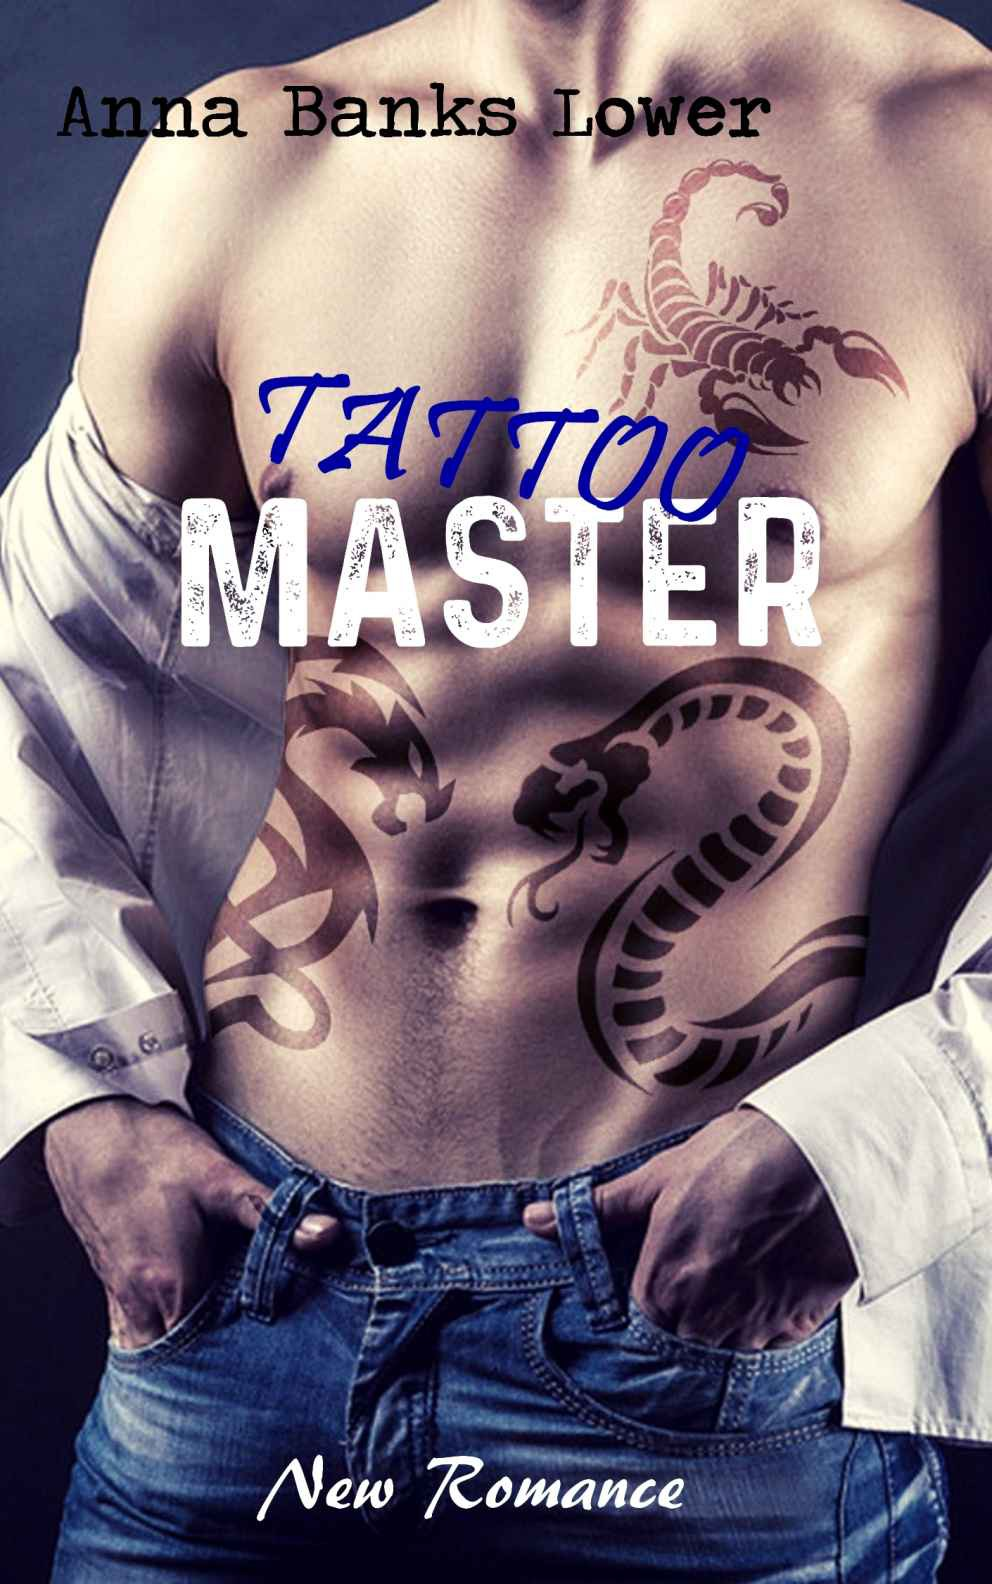 Tattoo Master, Tome 1 Anna Banks Lower 2020